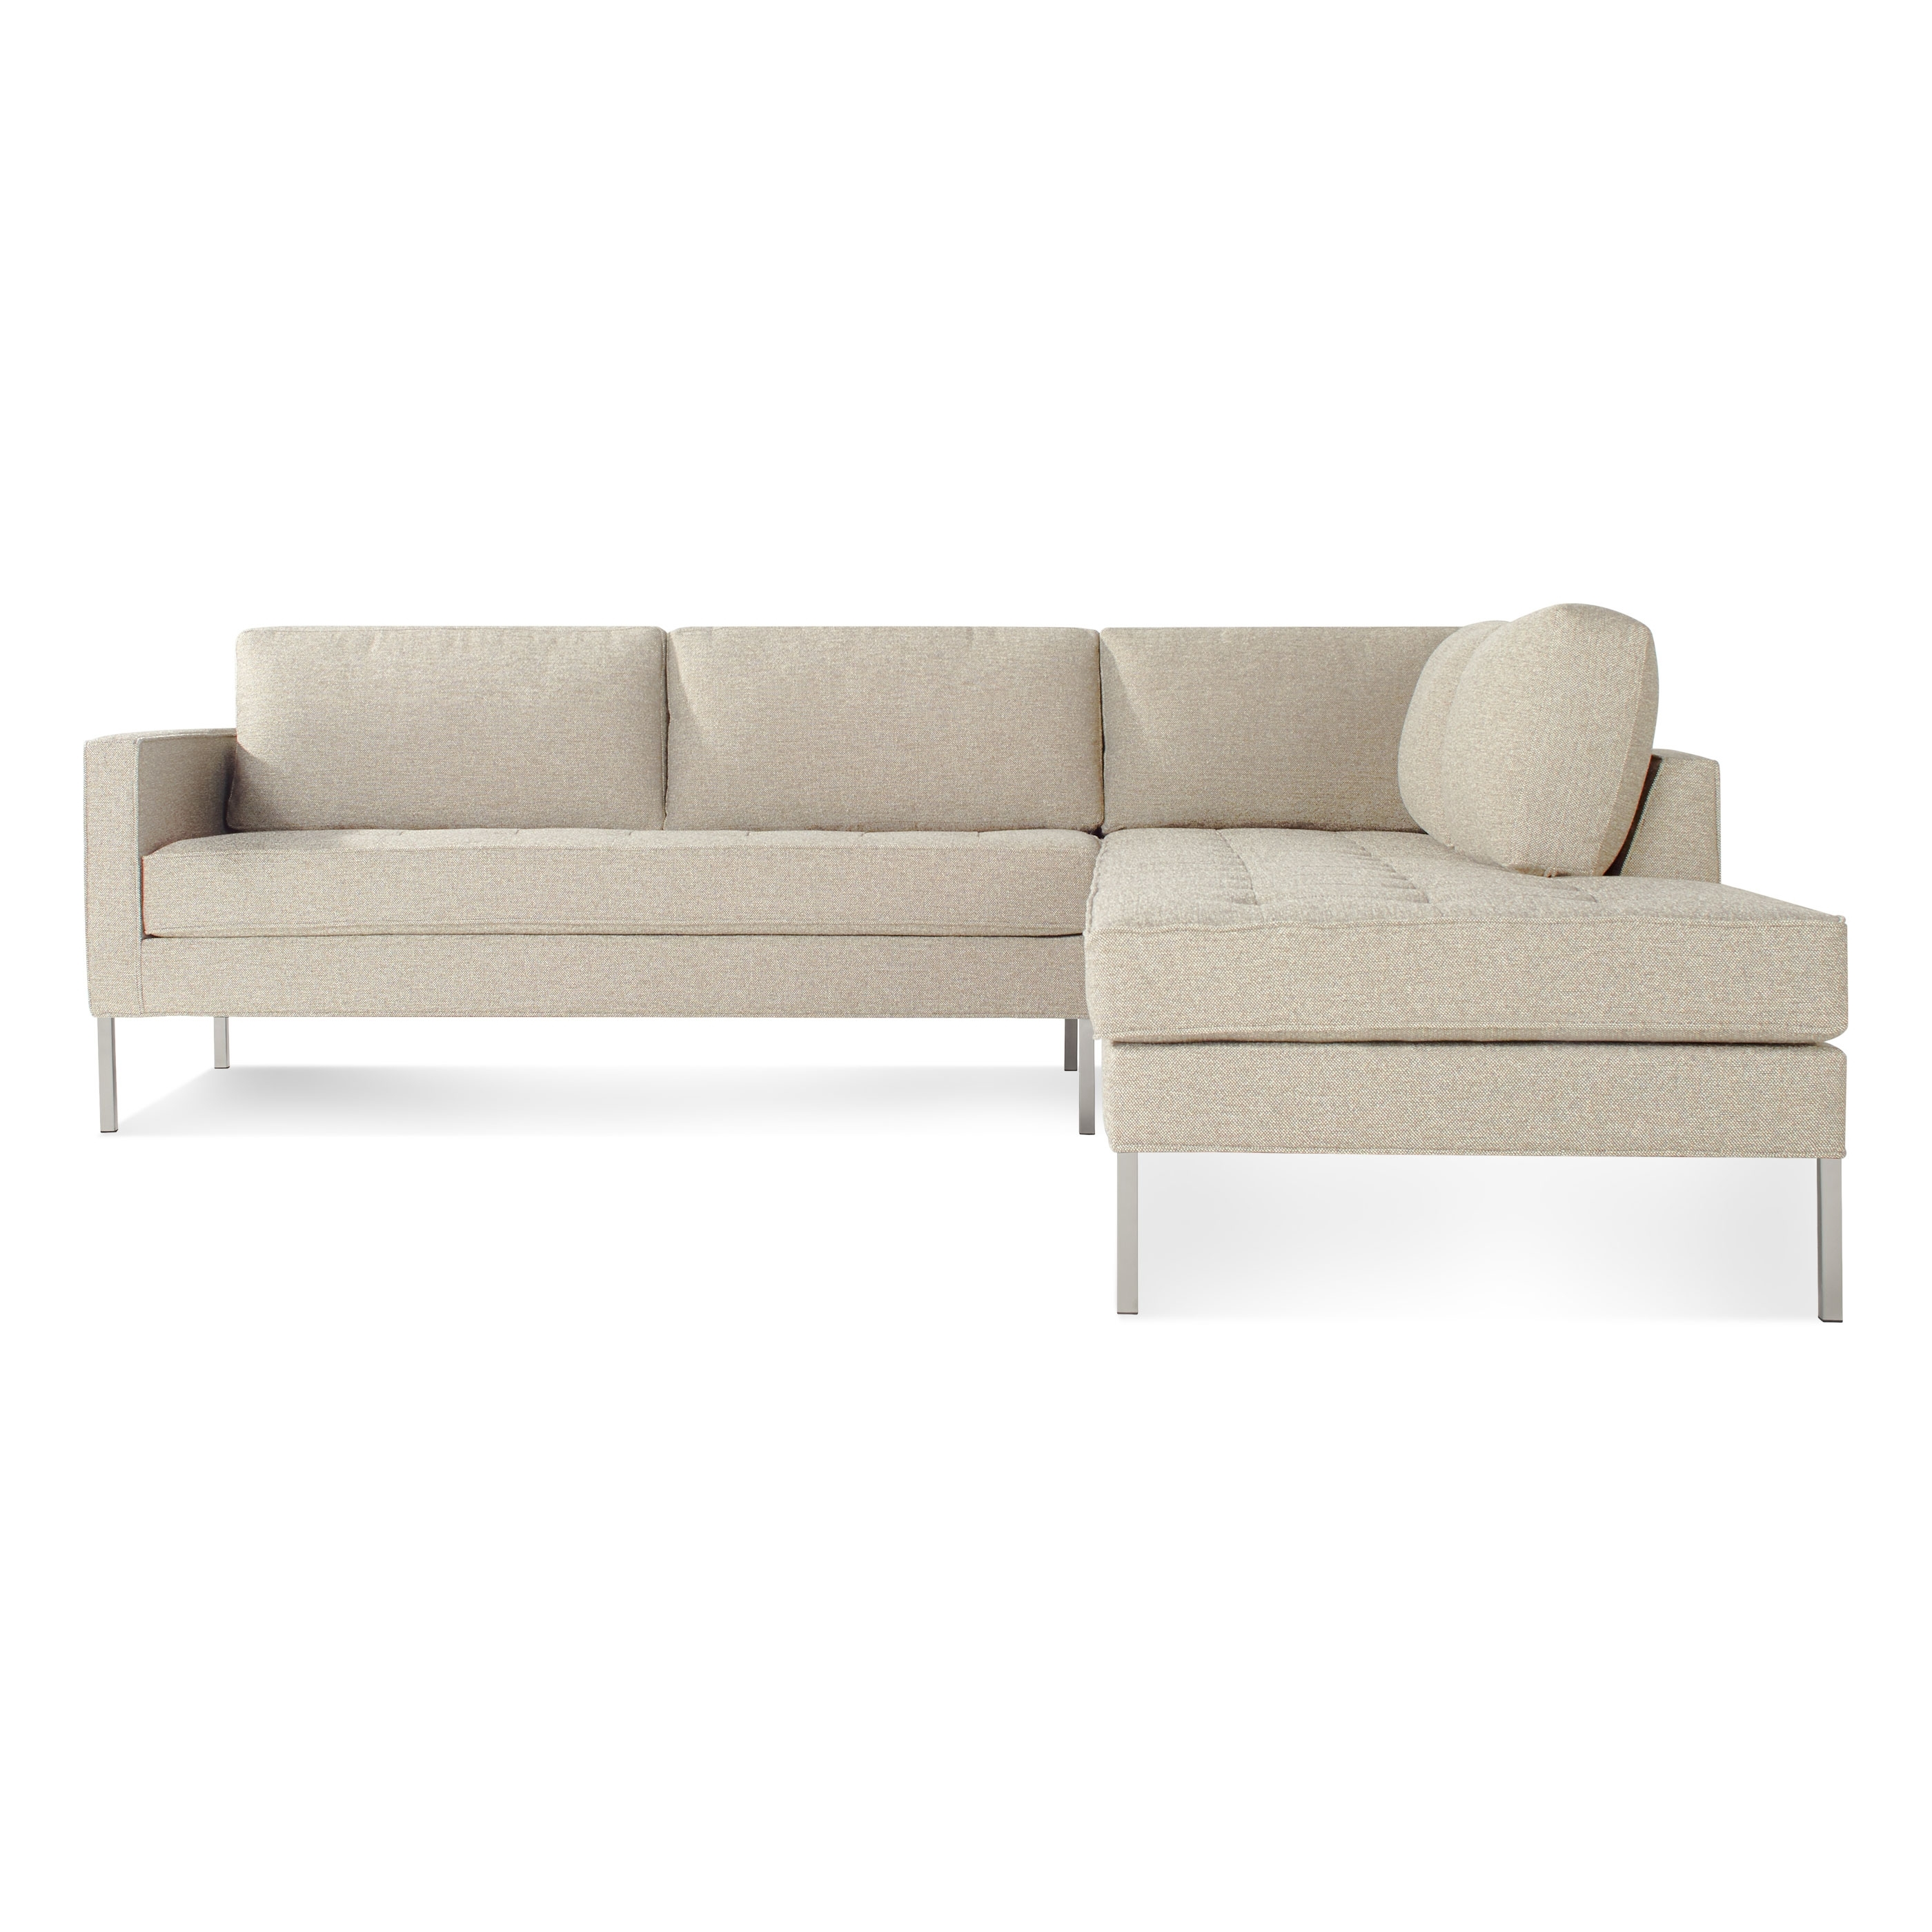 Blu Dot Throughout Nova Scotia Sectional Sofas (View 8 of 20)